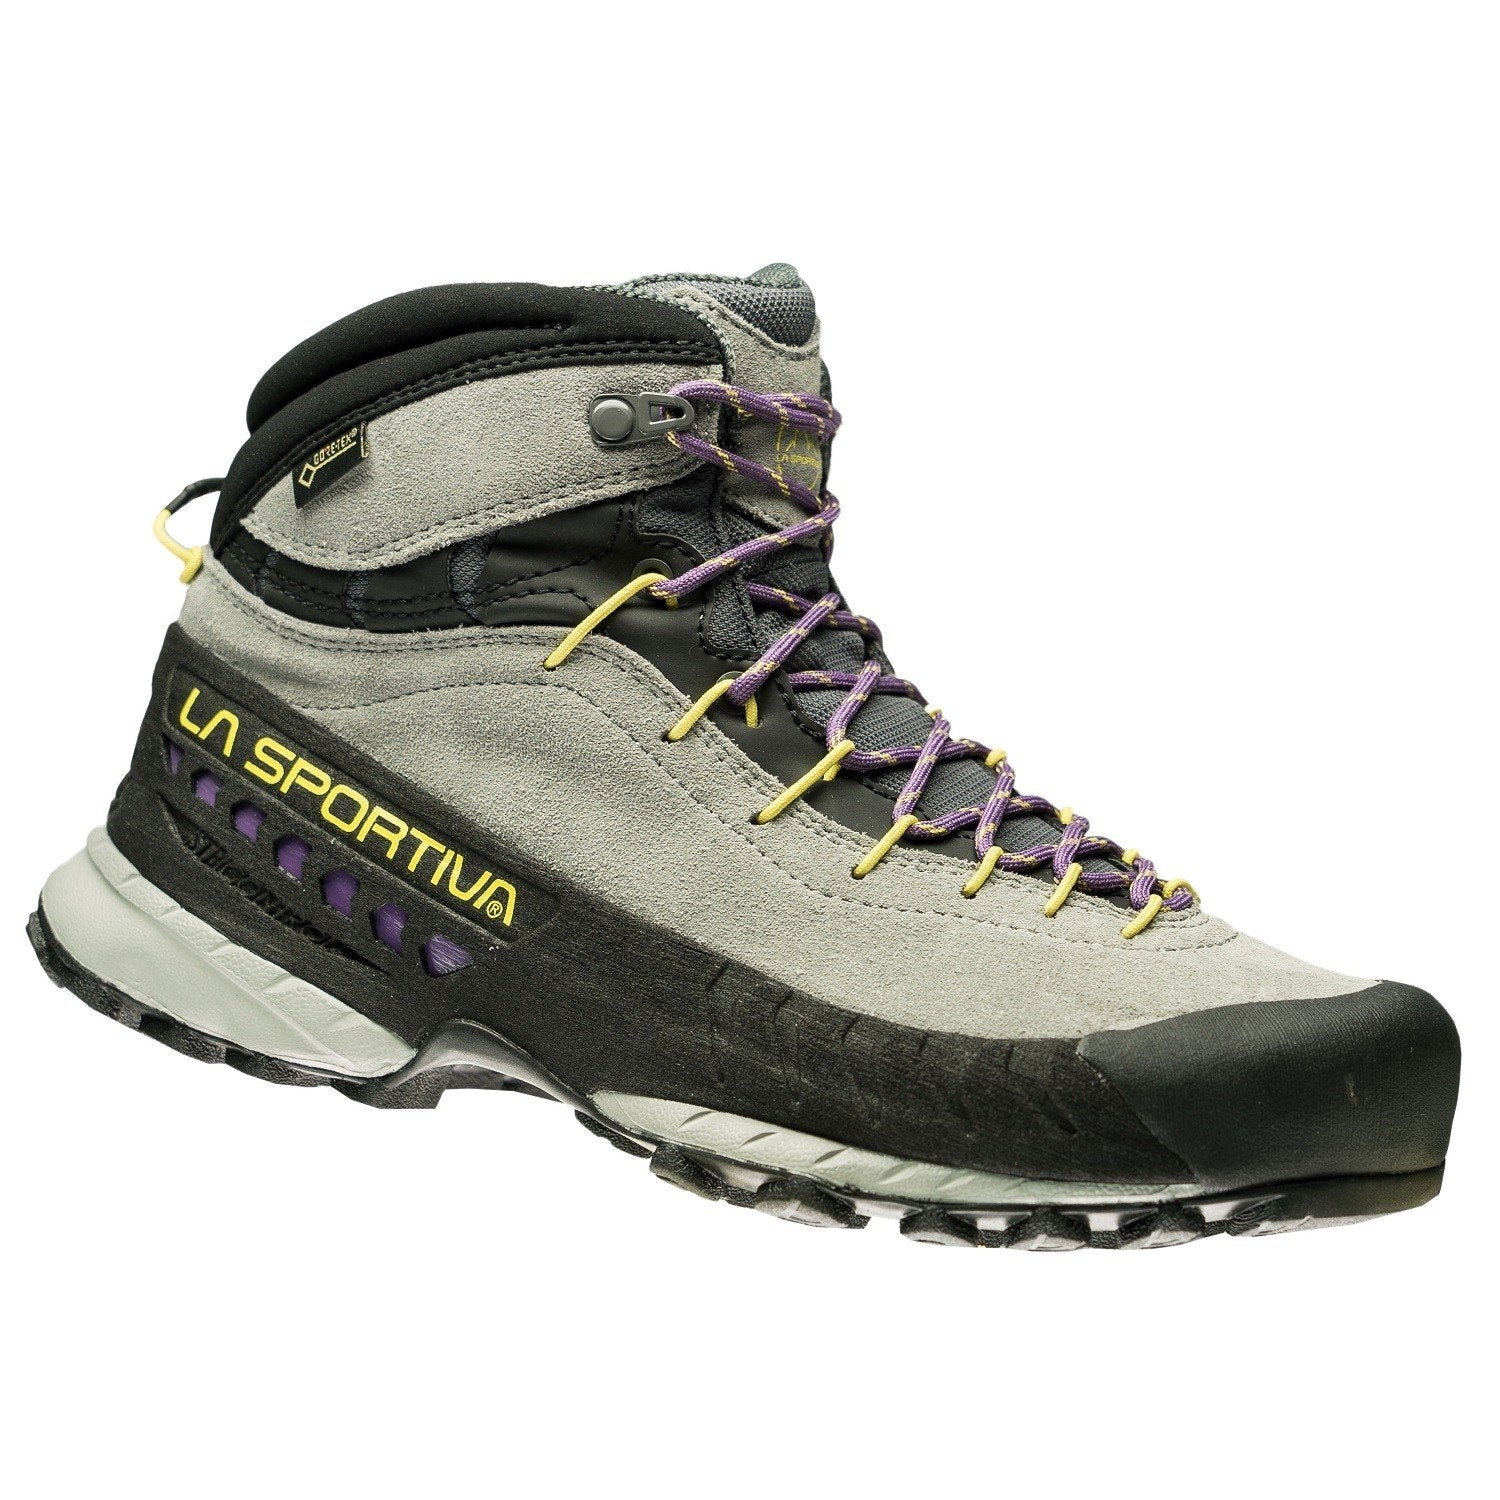 La Sportiva TX4 Mid Womens approach boot, front/side view in light grey and black colours